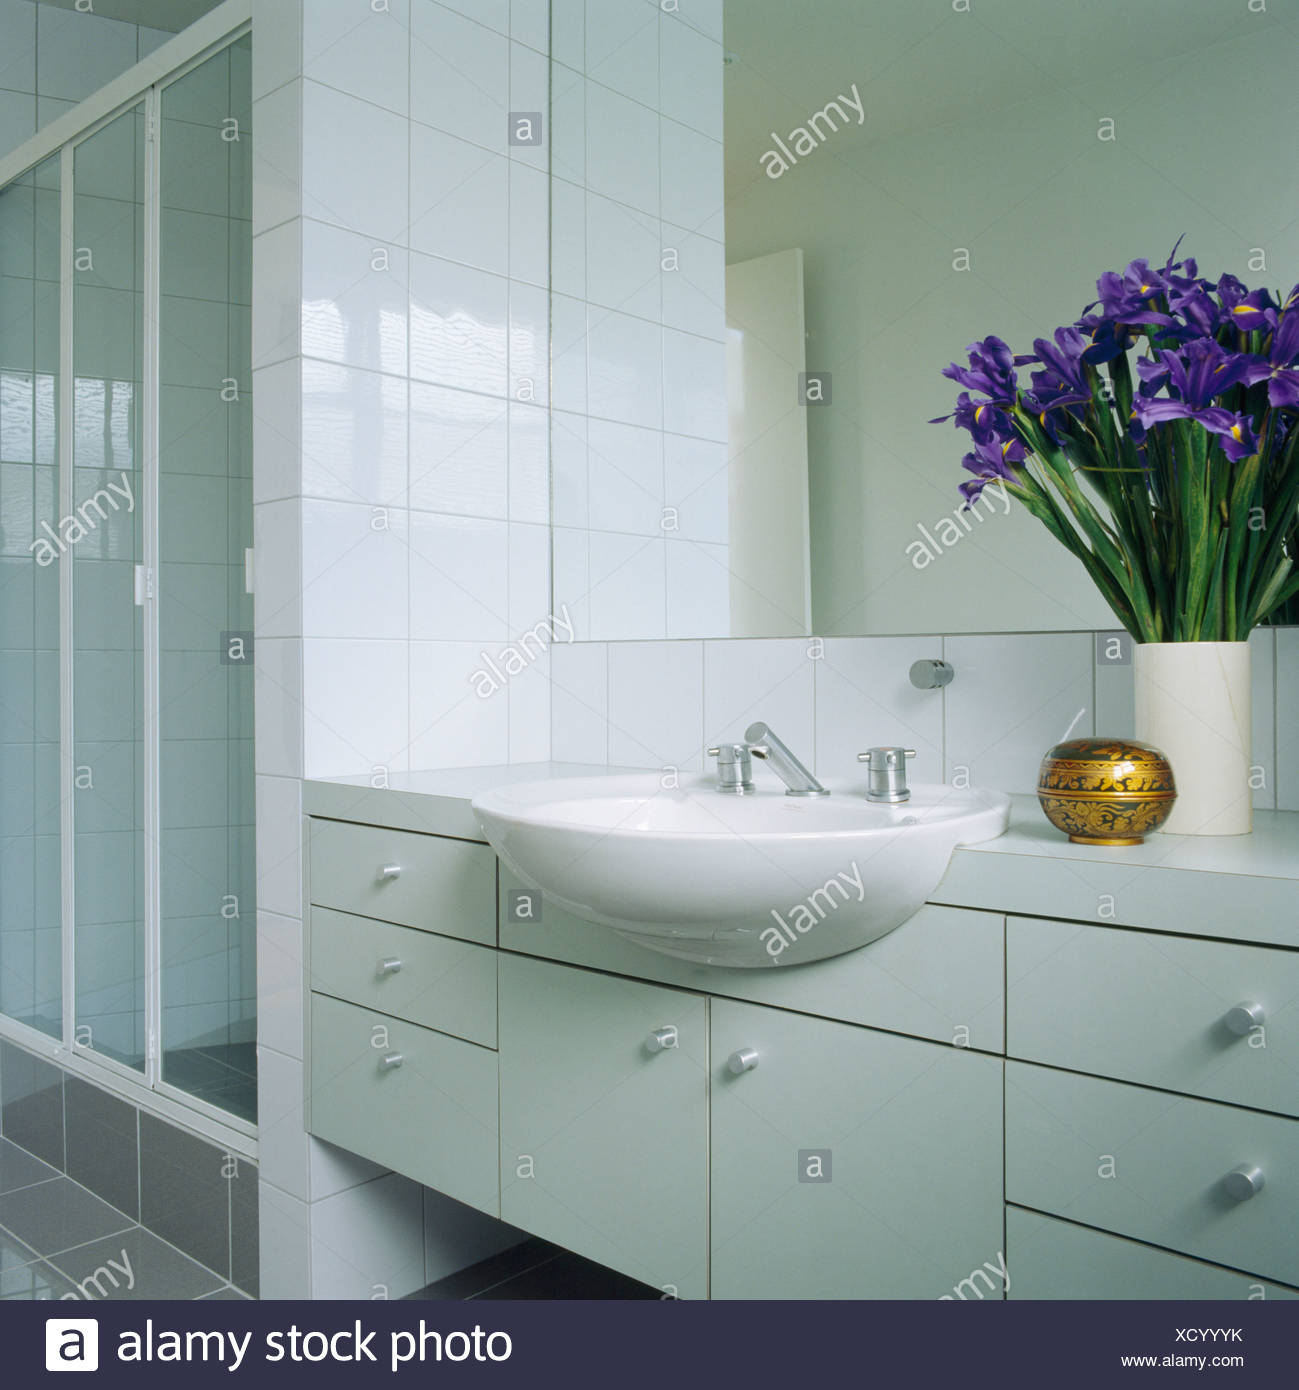 Fitted Bathroom Stock Photos & Fitted Bathroom Stock Images - Alamy